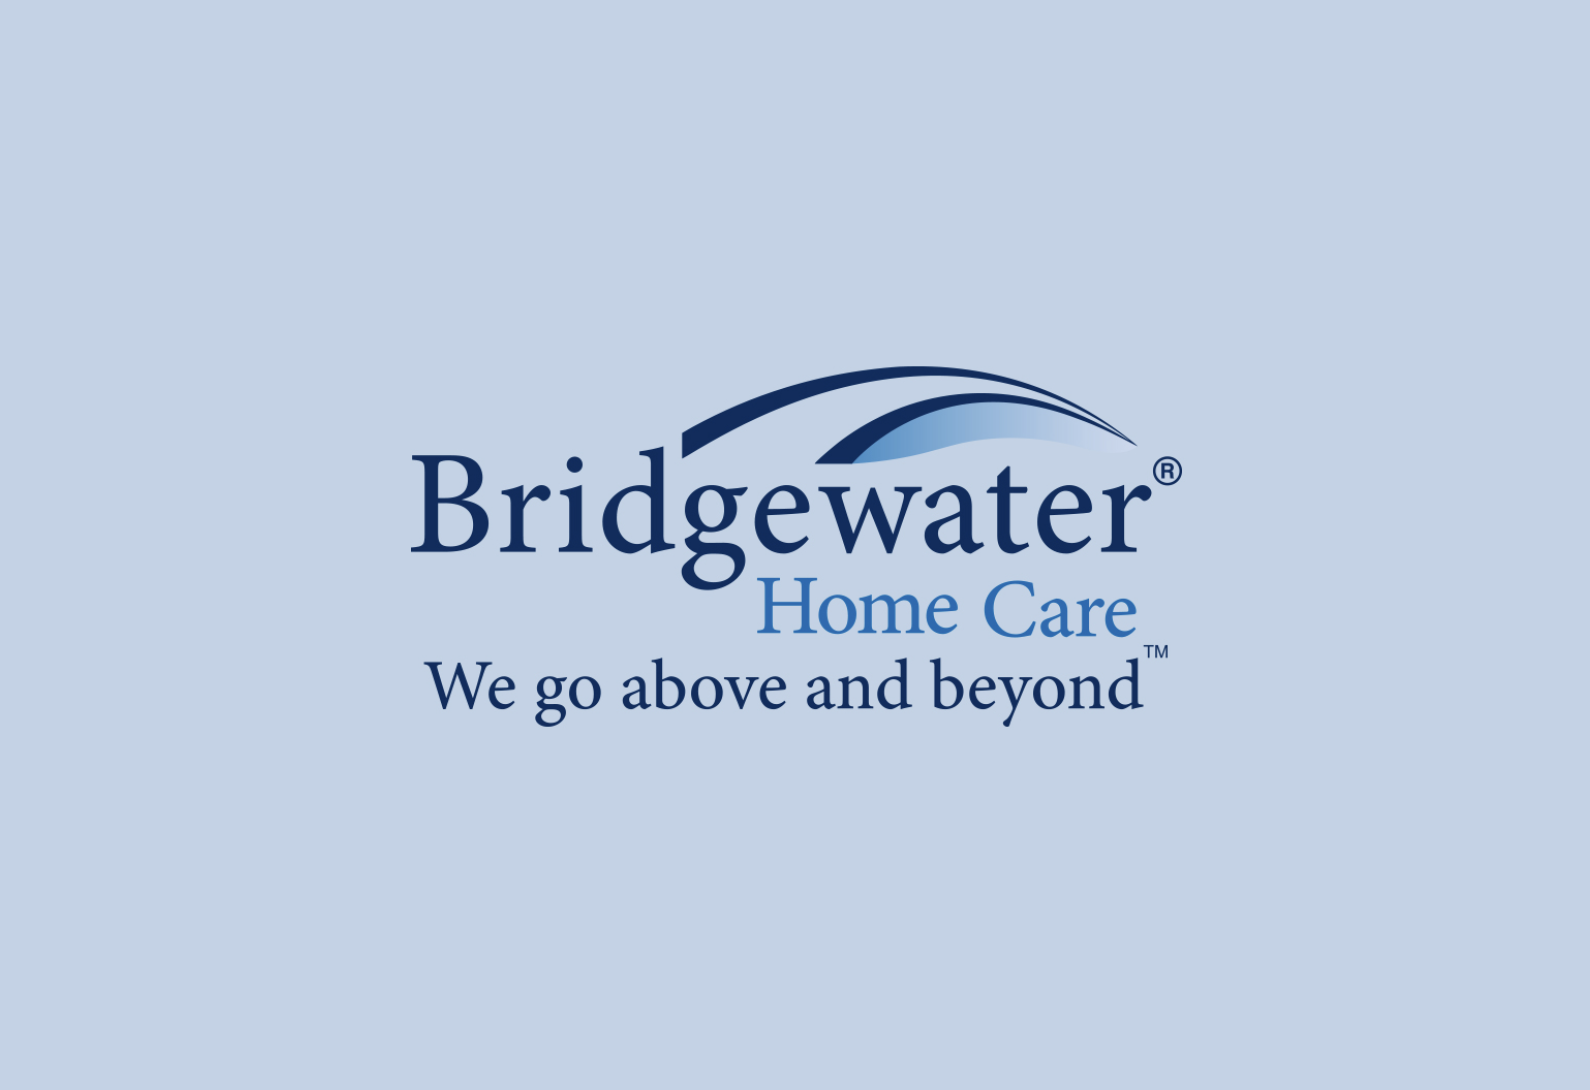 Bridgewater Home Care Graphic Design Case Study by The Agency Creative